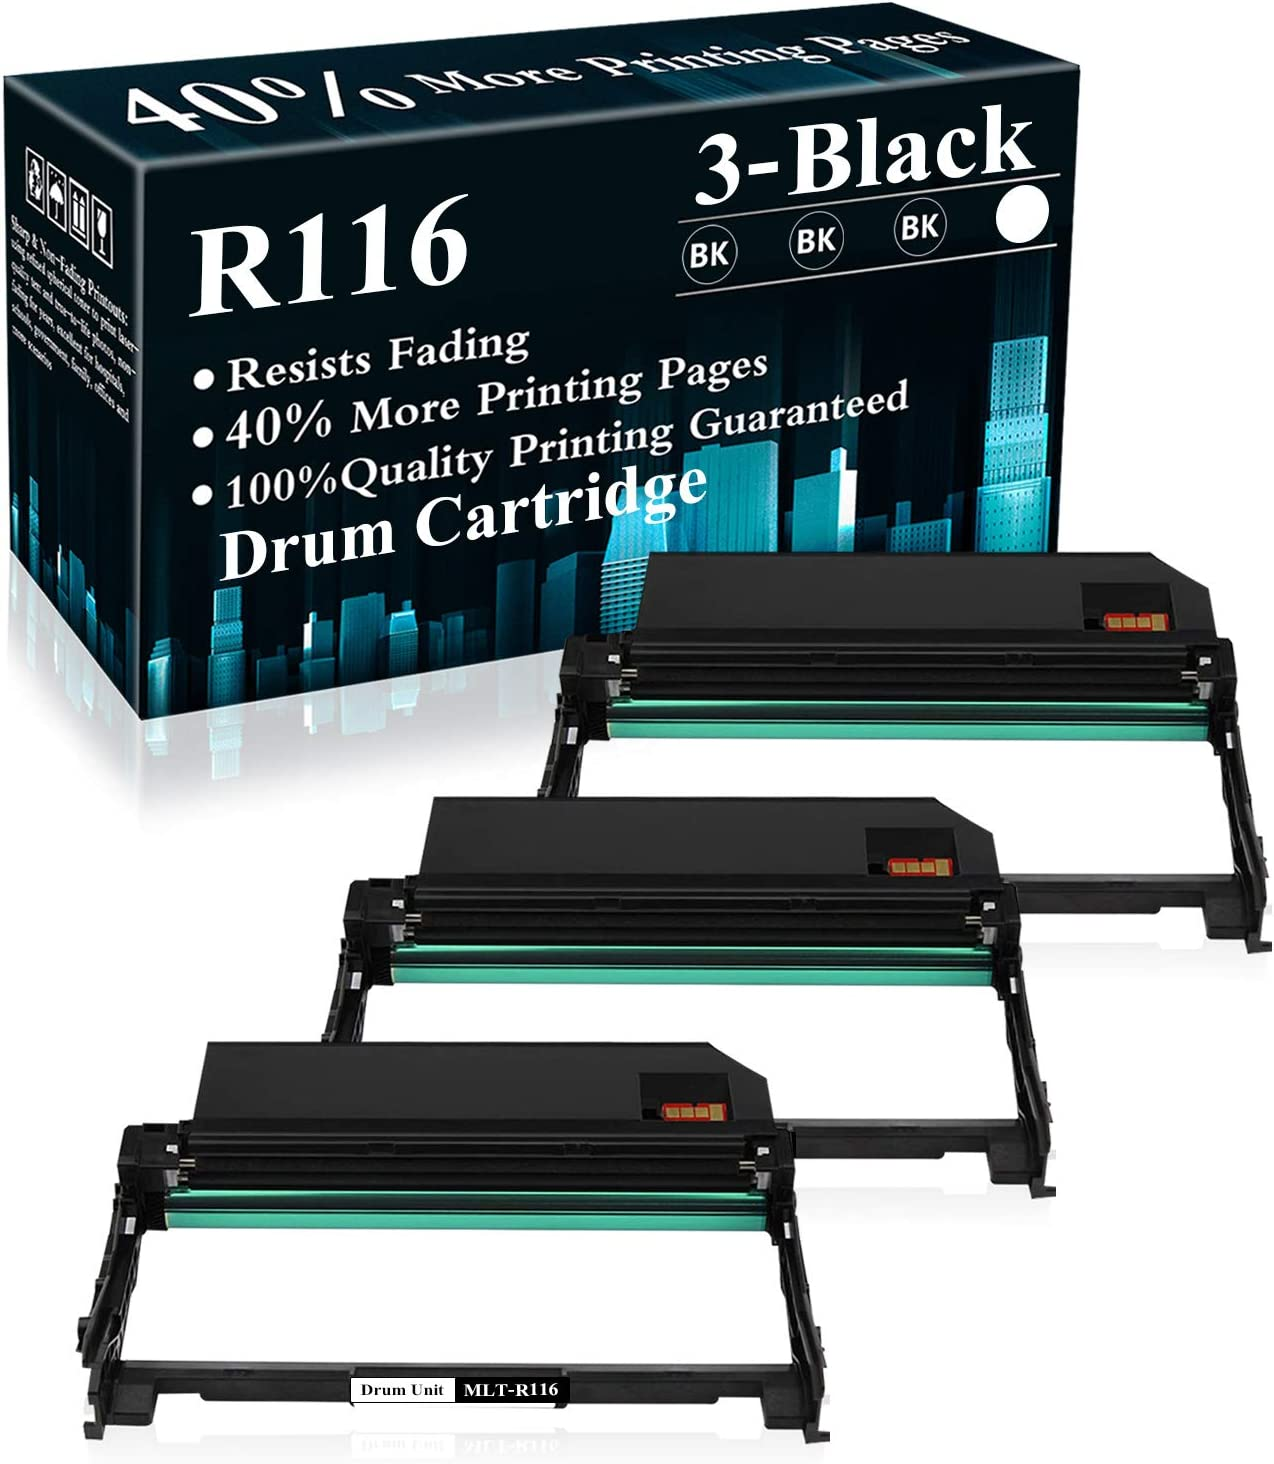 3 Pack MLT-R116 Black Drum Unit Replacement for Samsung Xpress M2825DW M2835 M2675FN M2676N M2676FH M2875FD M2625 M2625D M2626 M2875FD M2875FD M2885FW M2876HN Printer,Sold by TopInk